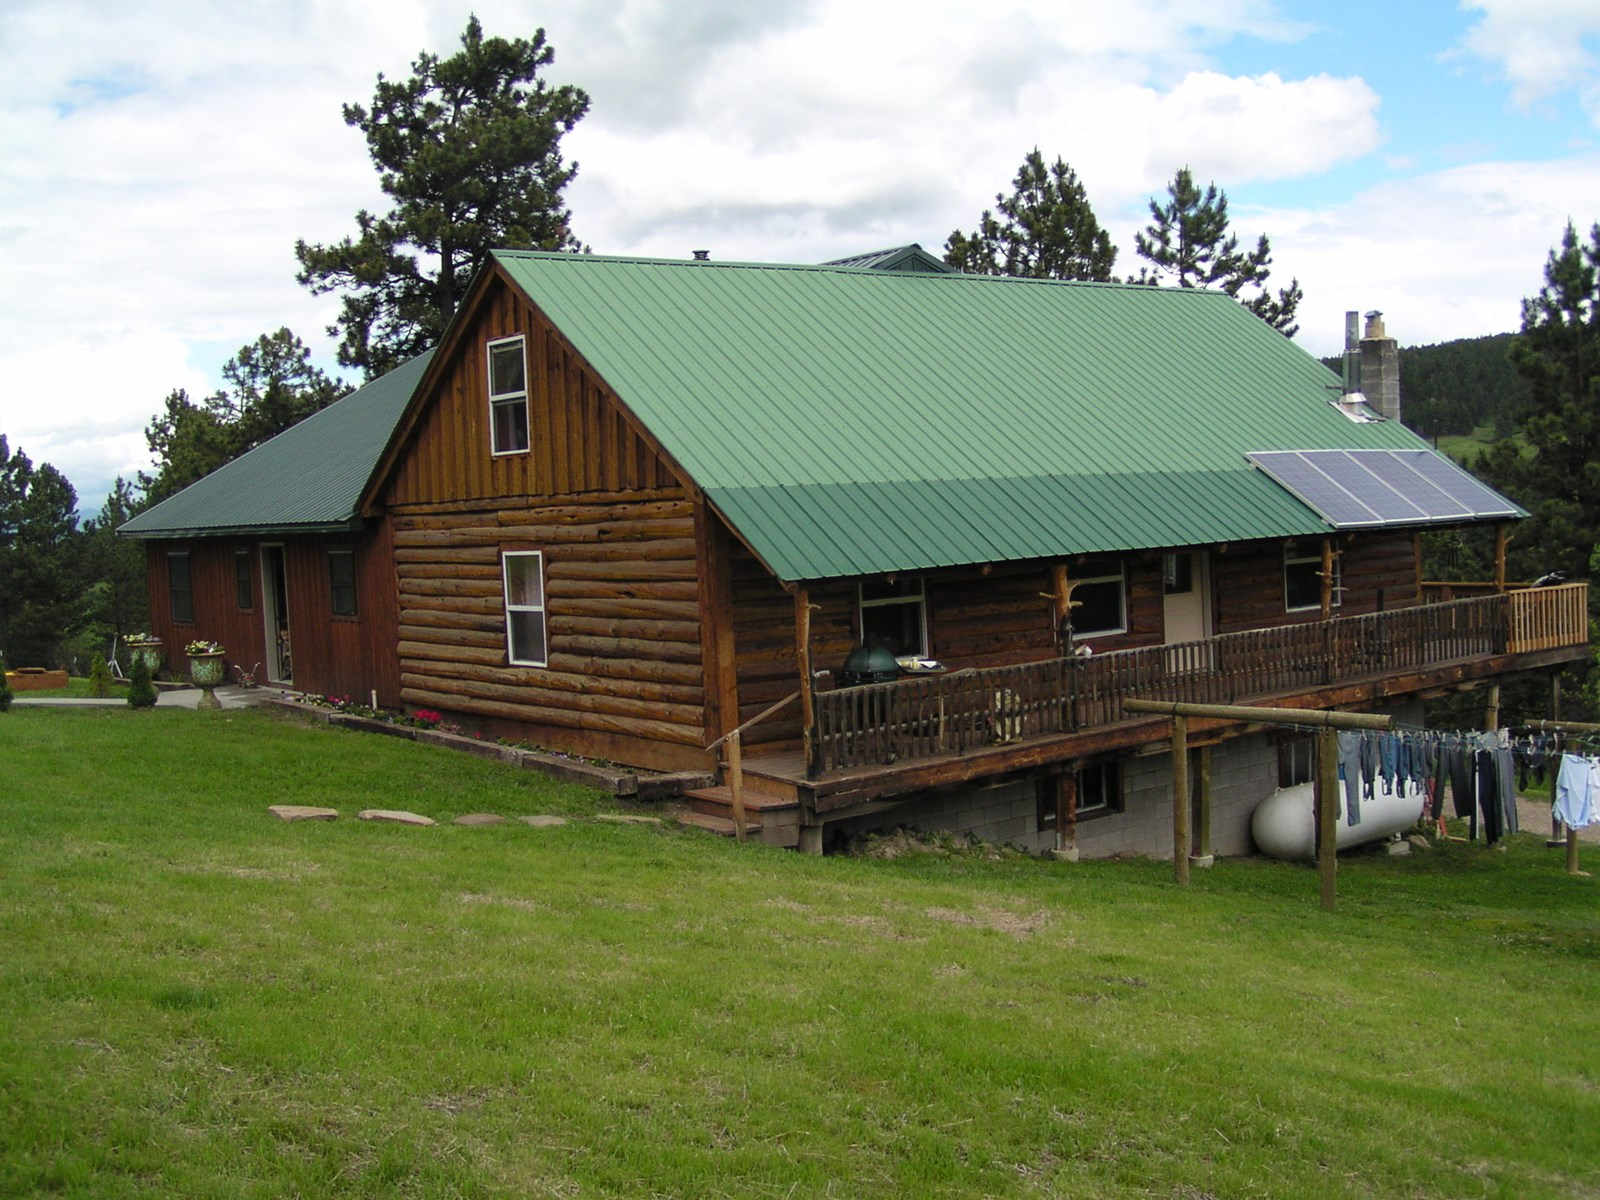 Central Montana Log Home on 20 acres for sale